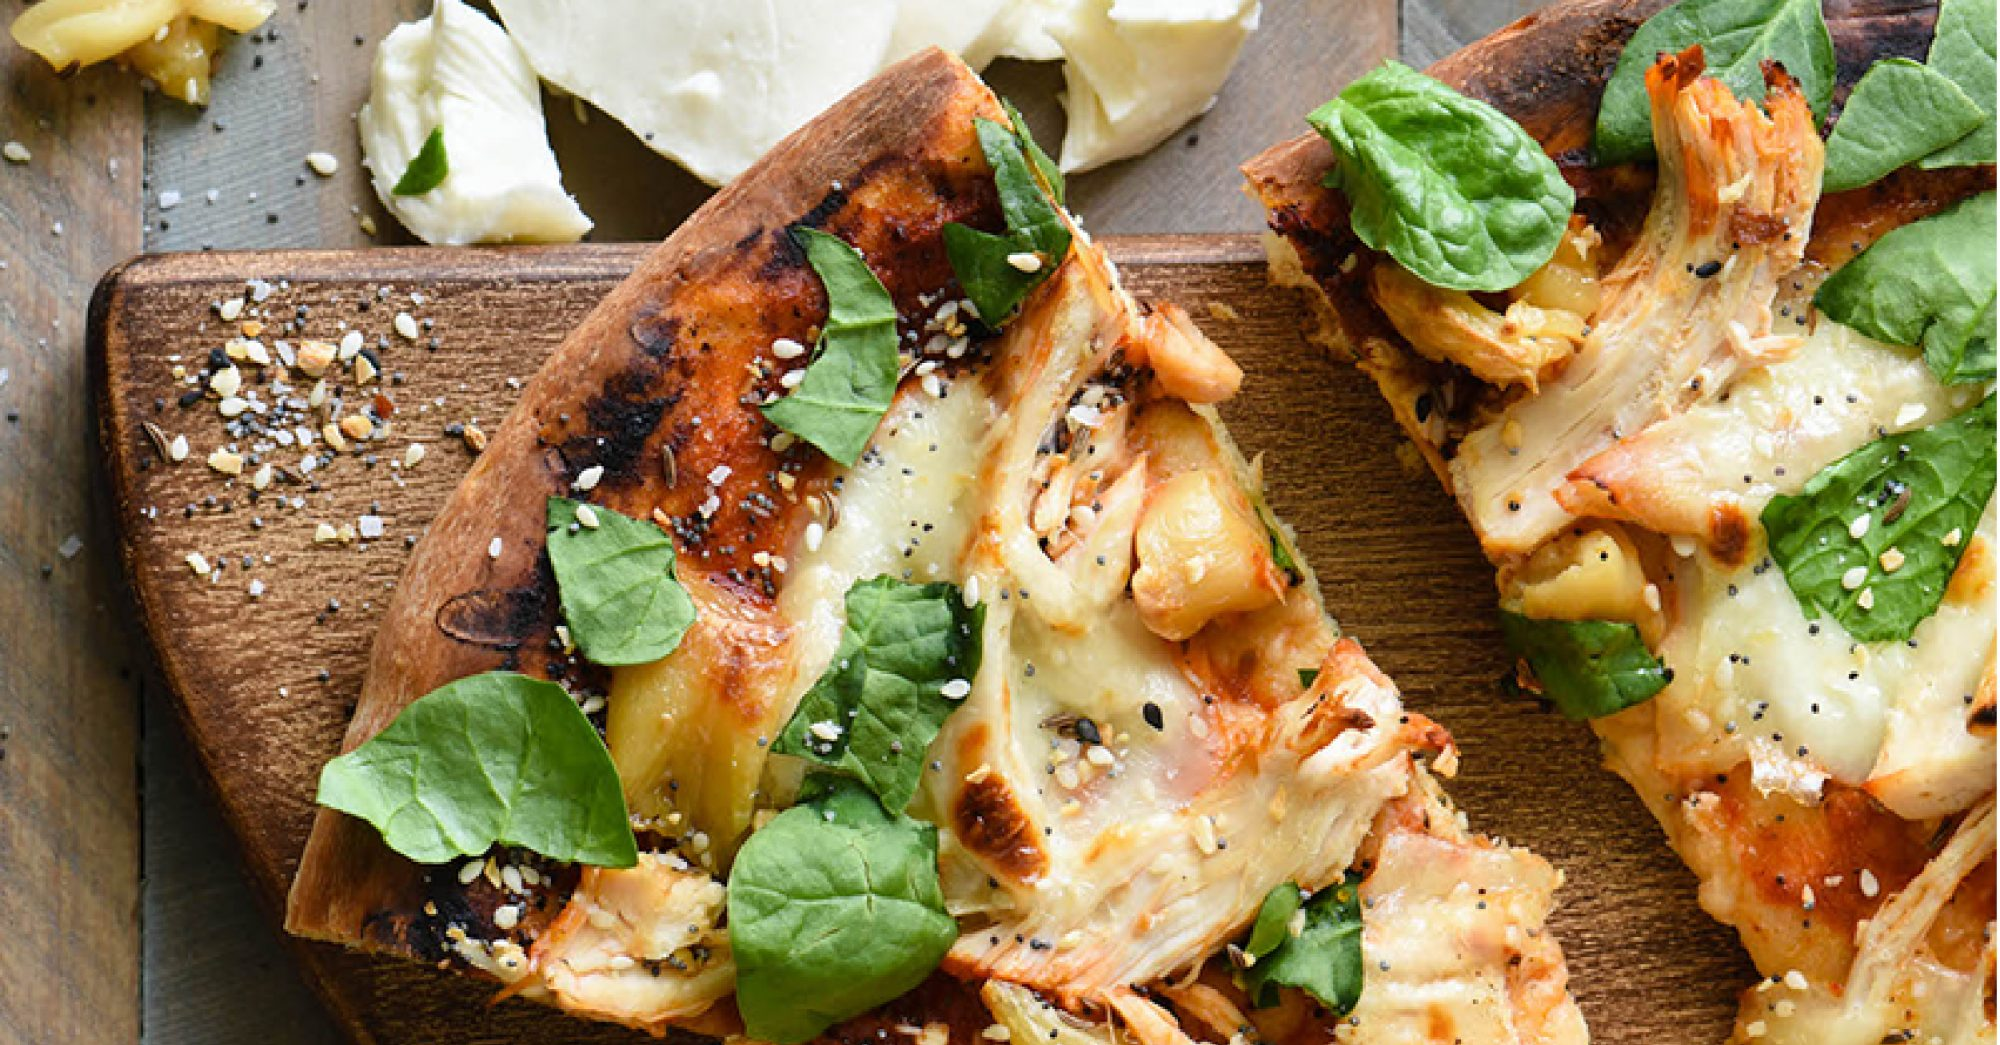 Grilled Chicken Pizza with Mozzarella and Roasted Garlic